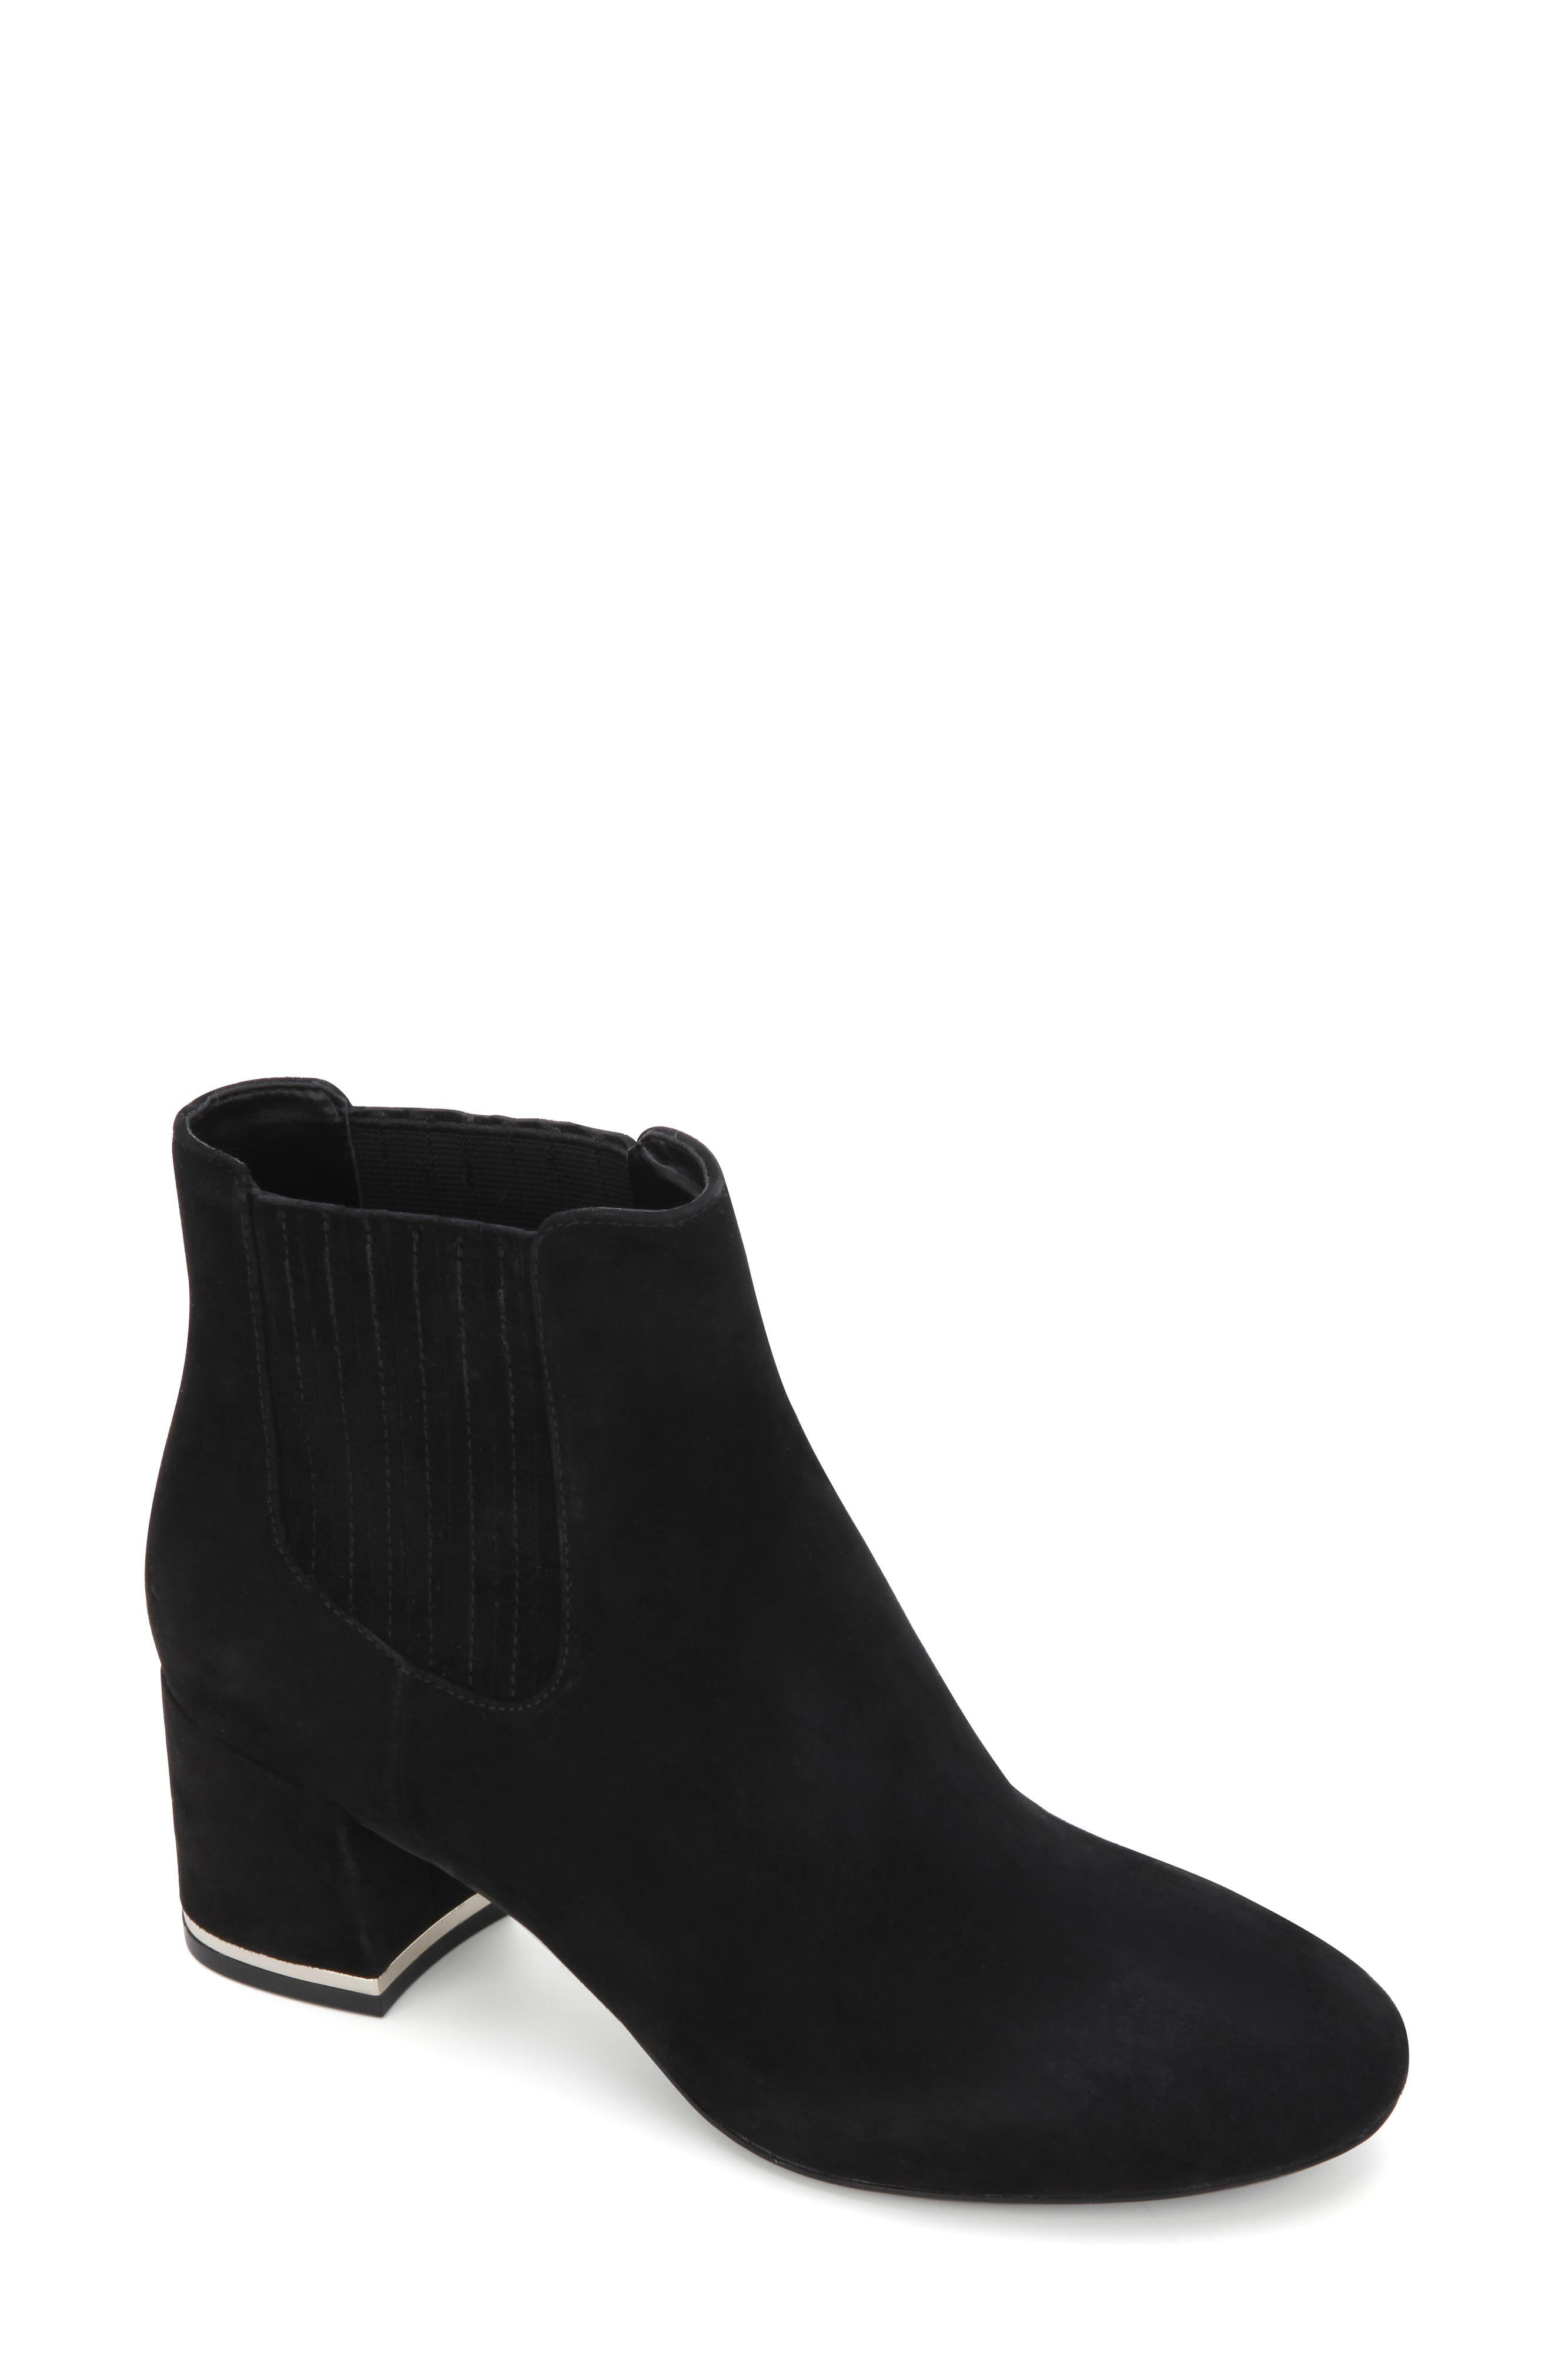 Complete your look with the contemporary finesse of this streamlined block-heel bootie featuring a memory foam-cushioned footbed. Style Name: Kenneth Cole New York Edina Bootie (Women). Style Number: 6099236. Available in stores.